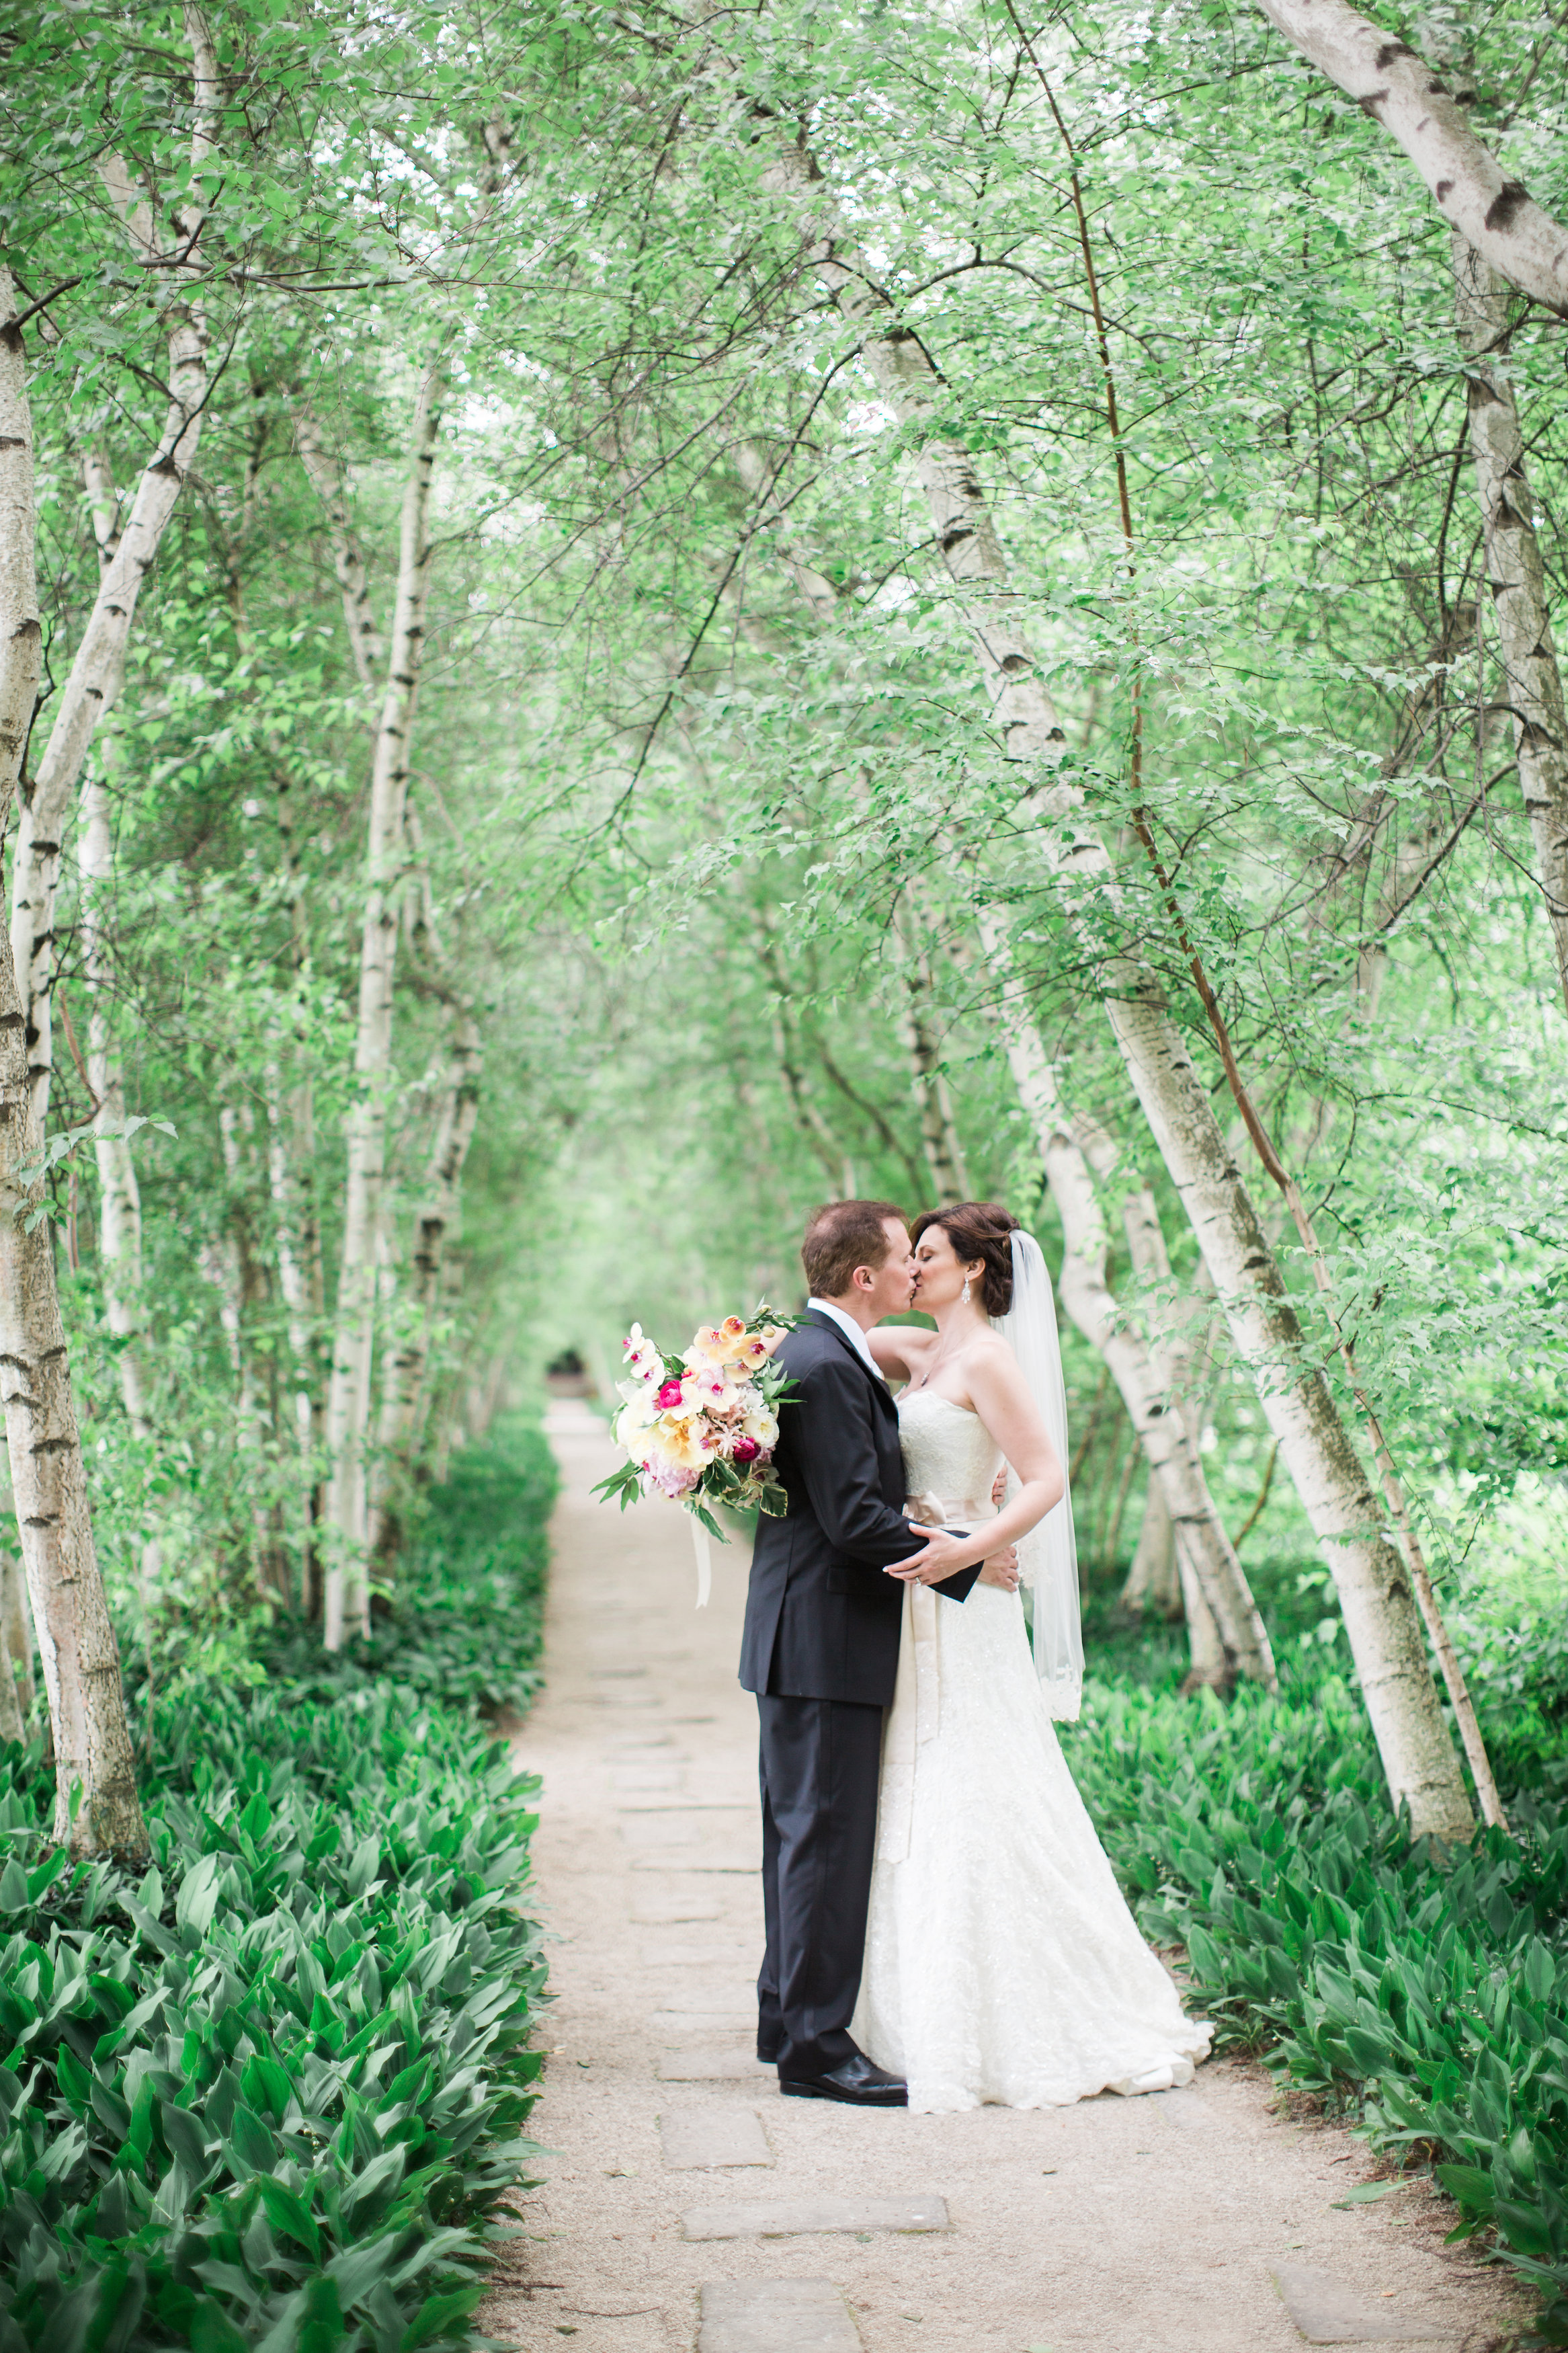 Laura & Kevin | Molly Taylor and Co.